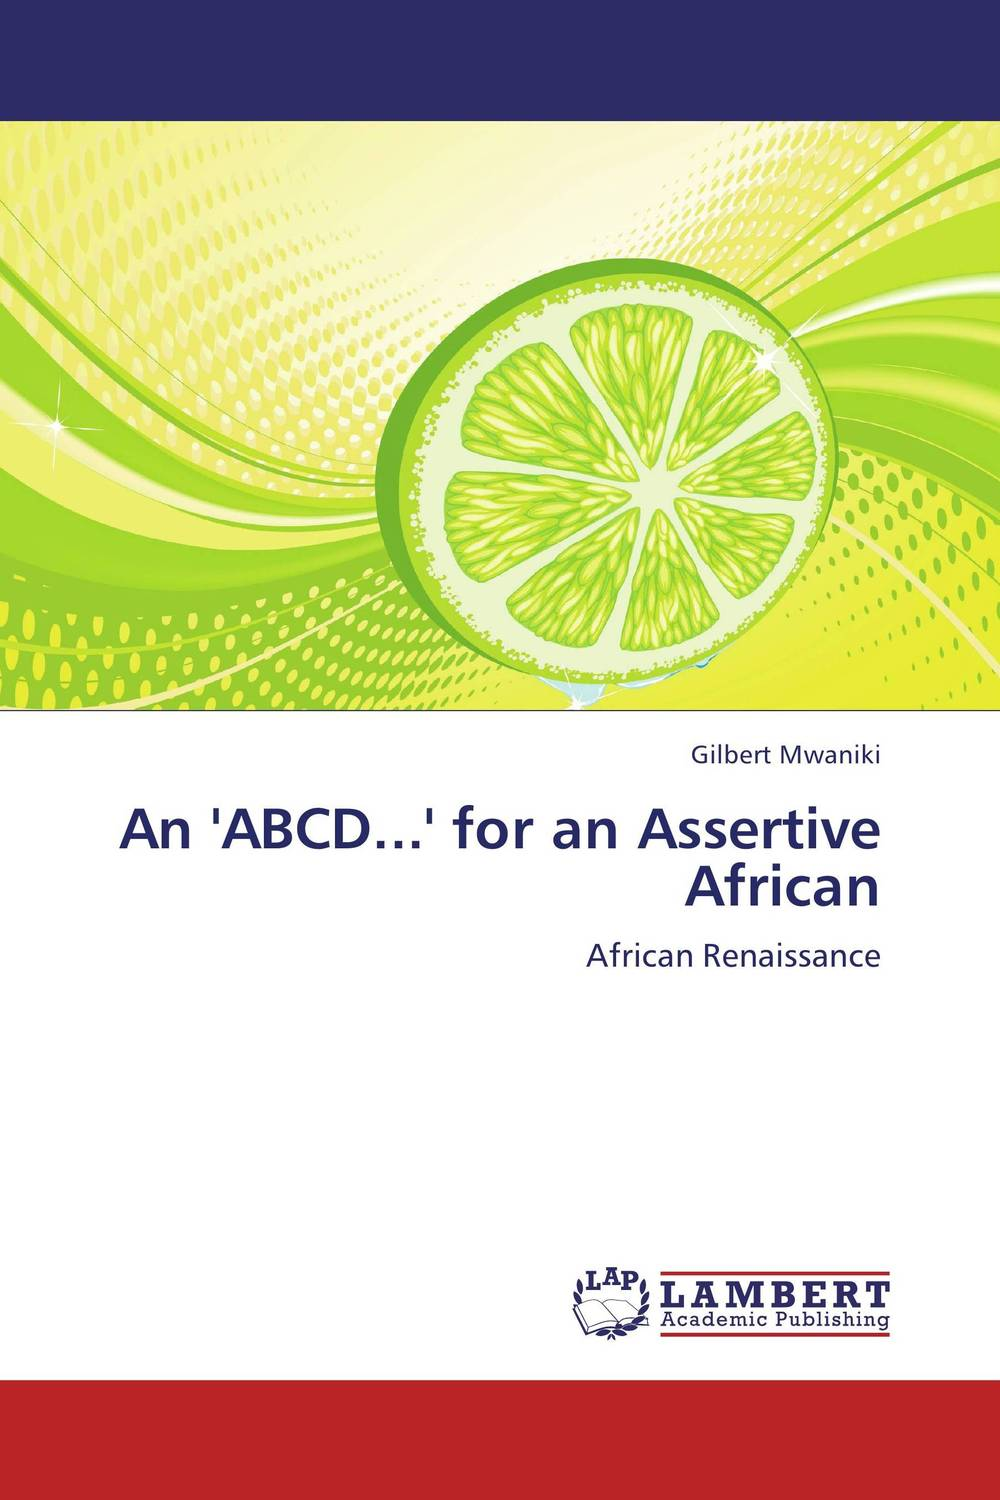 An 'ABCD...' for an Assertive African gods in our minds